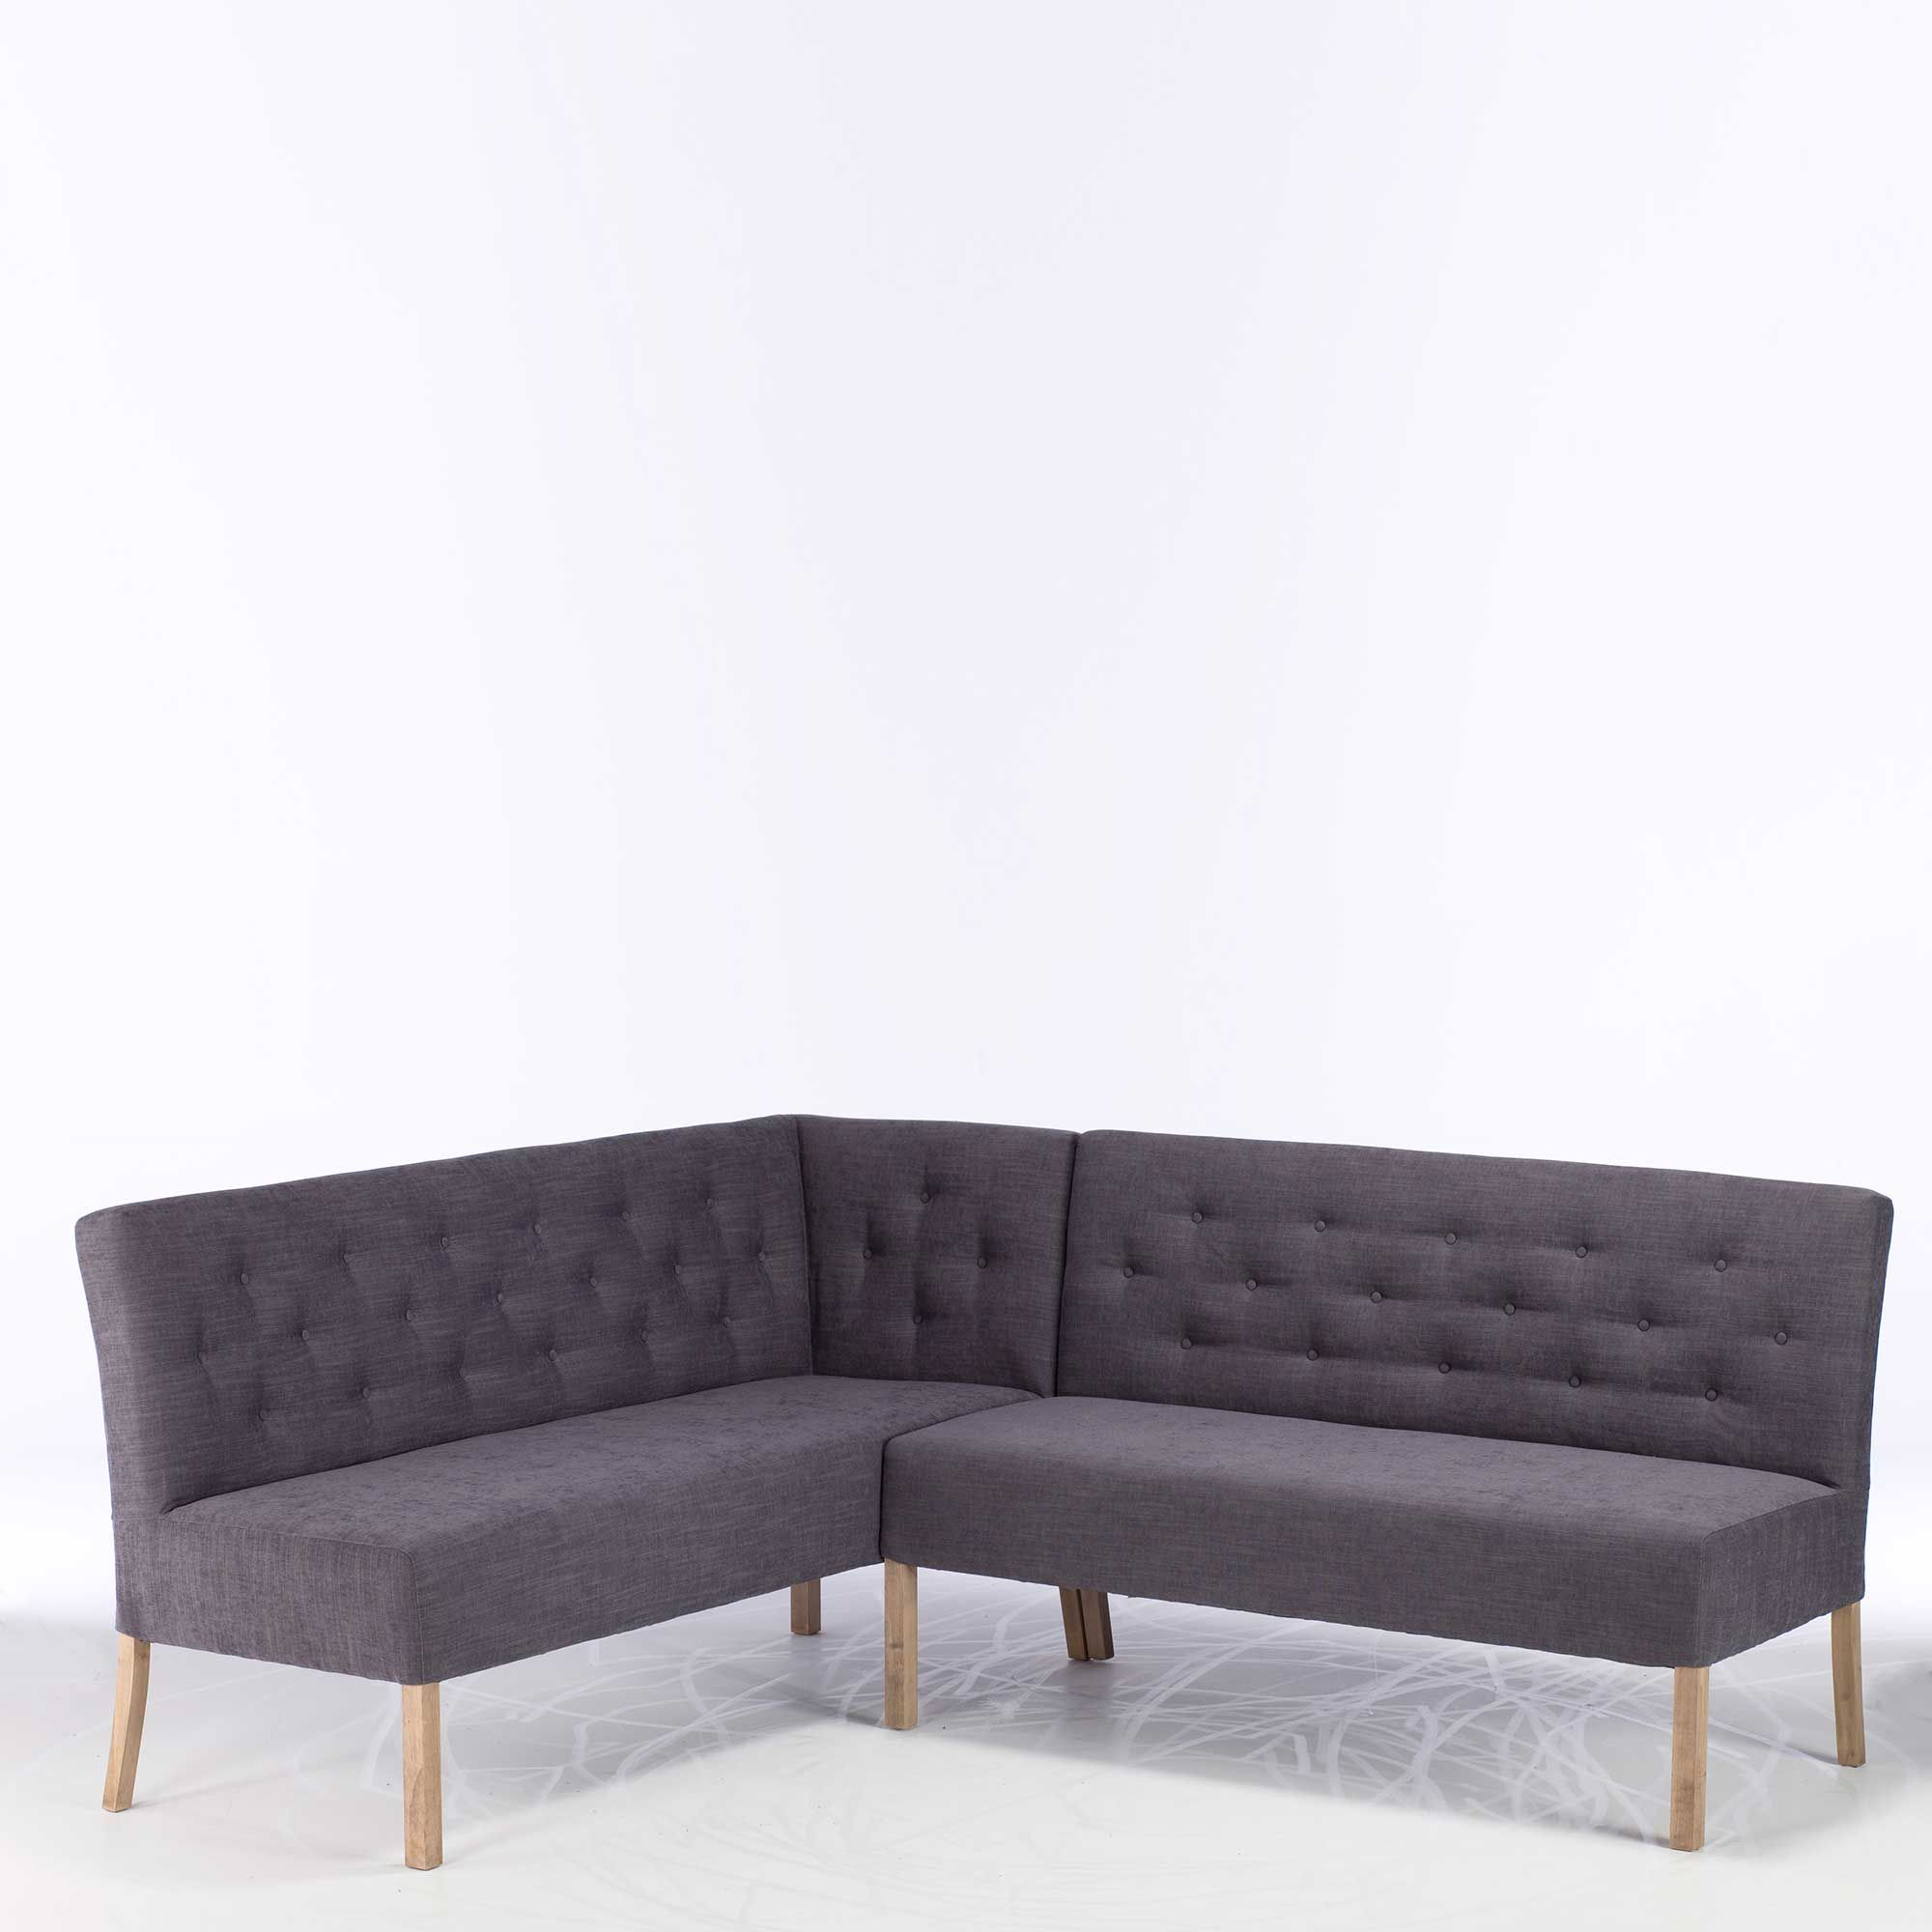 Barker And Stonehouse Sofa Protection Dry Cleaning Slipcovers Medina Corner Bench Dining